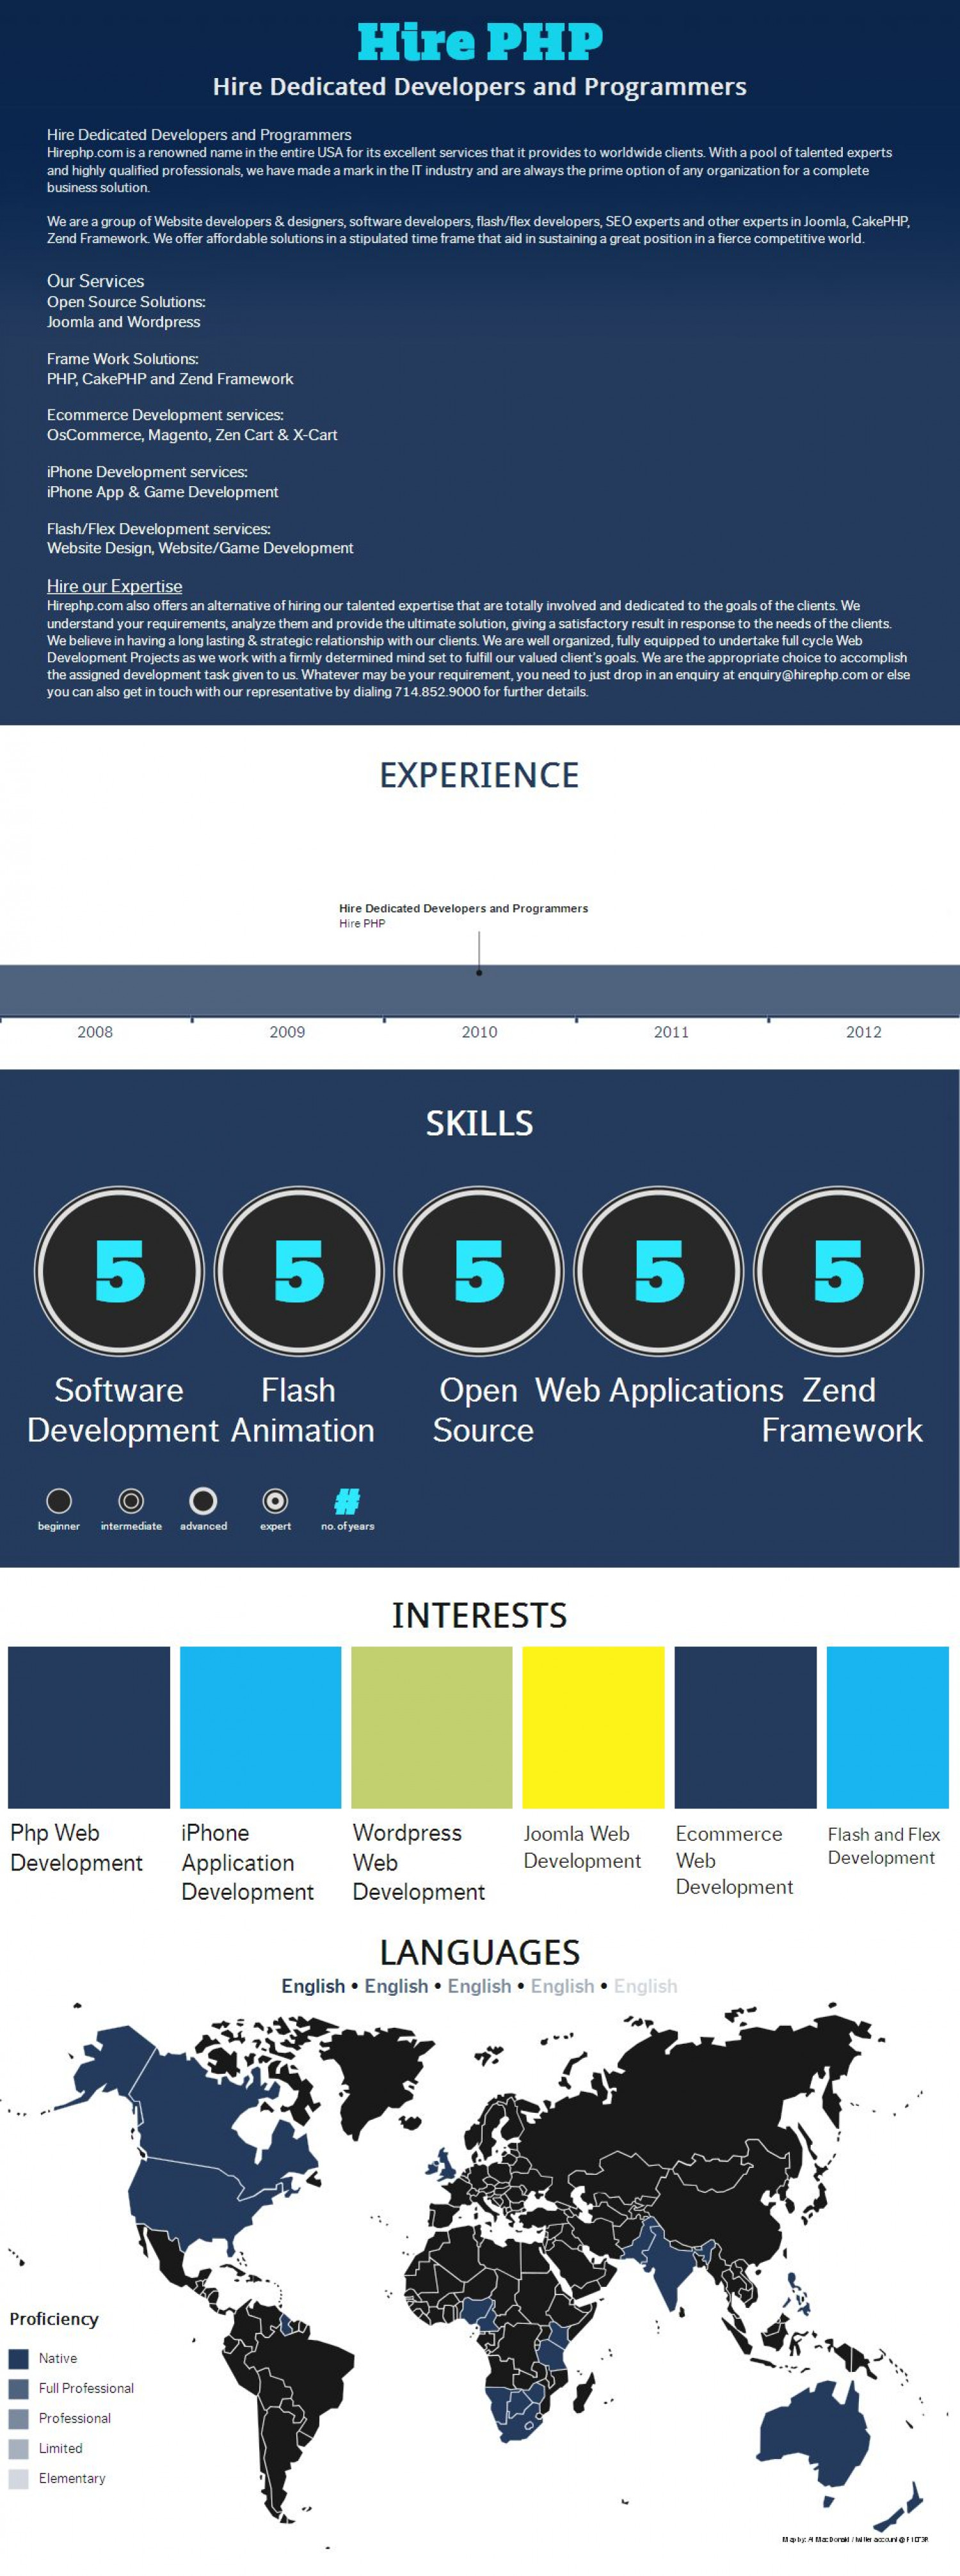 Hire Dedicated Developers and Programmers Infographic